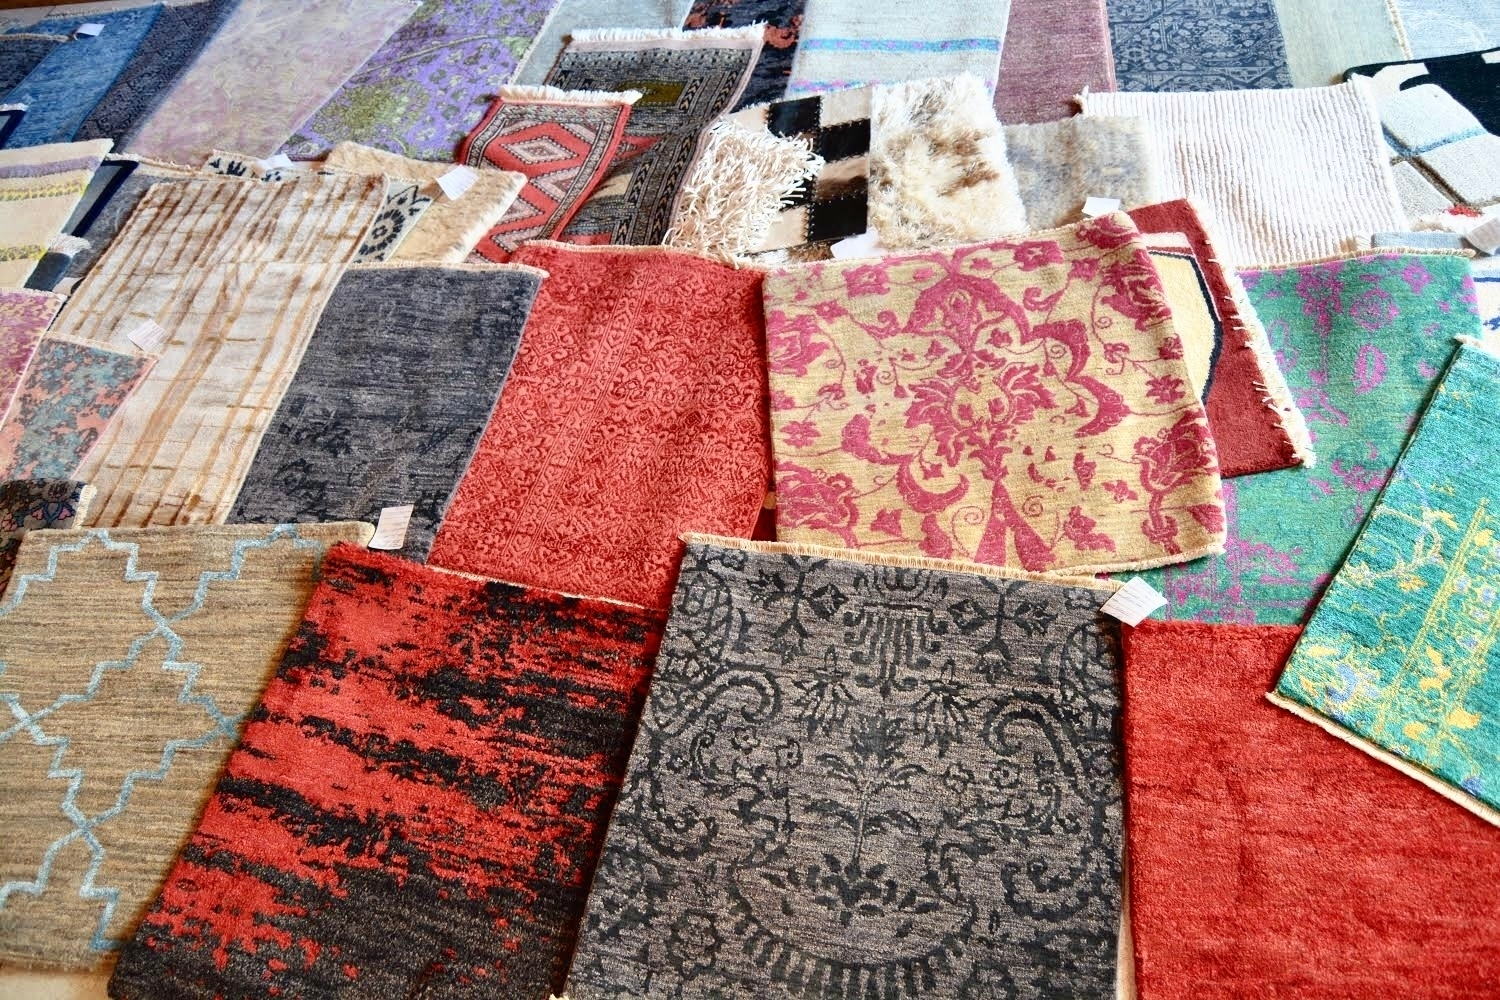 Tapis d'Orient Bashir à Montréal: Need a custom rug to beautify your interior spaces? Why not order a sample! Our team of stylists are at your disposal to assist you in selecting the right colors, styles, materials and sizes